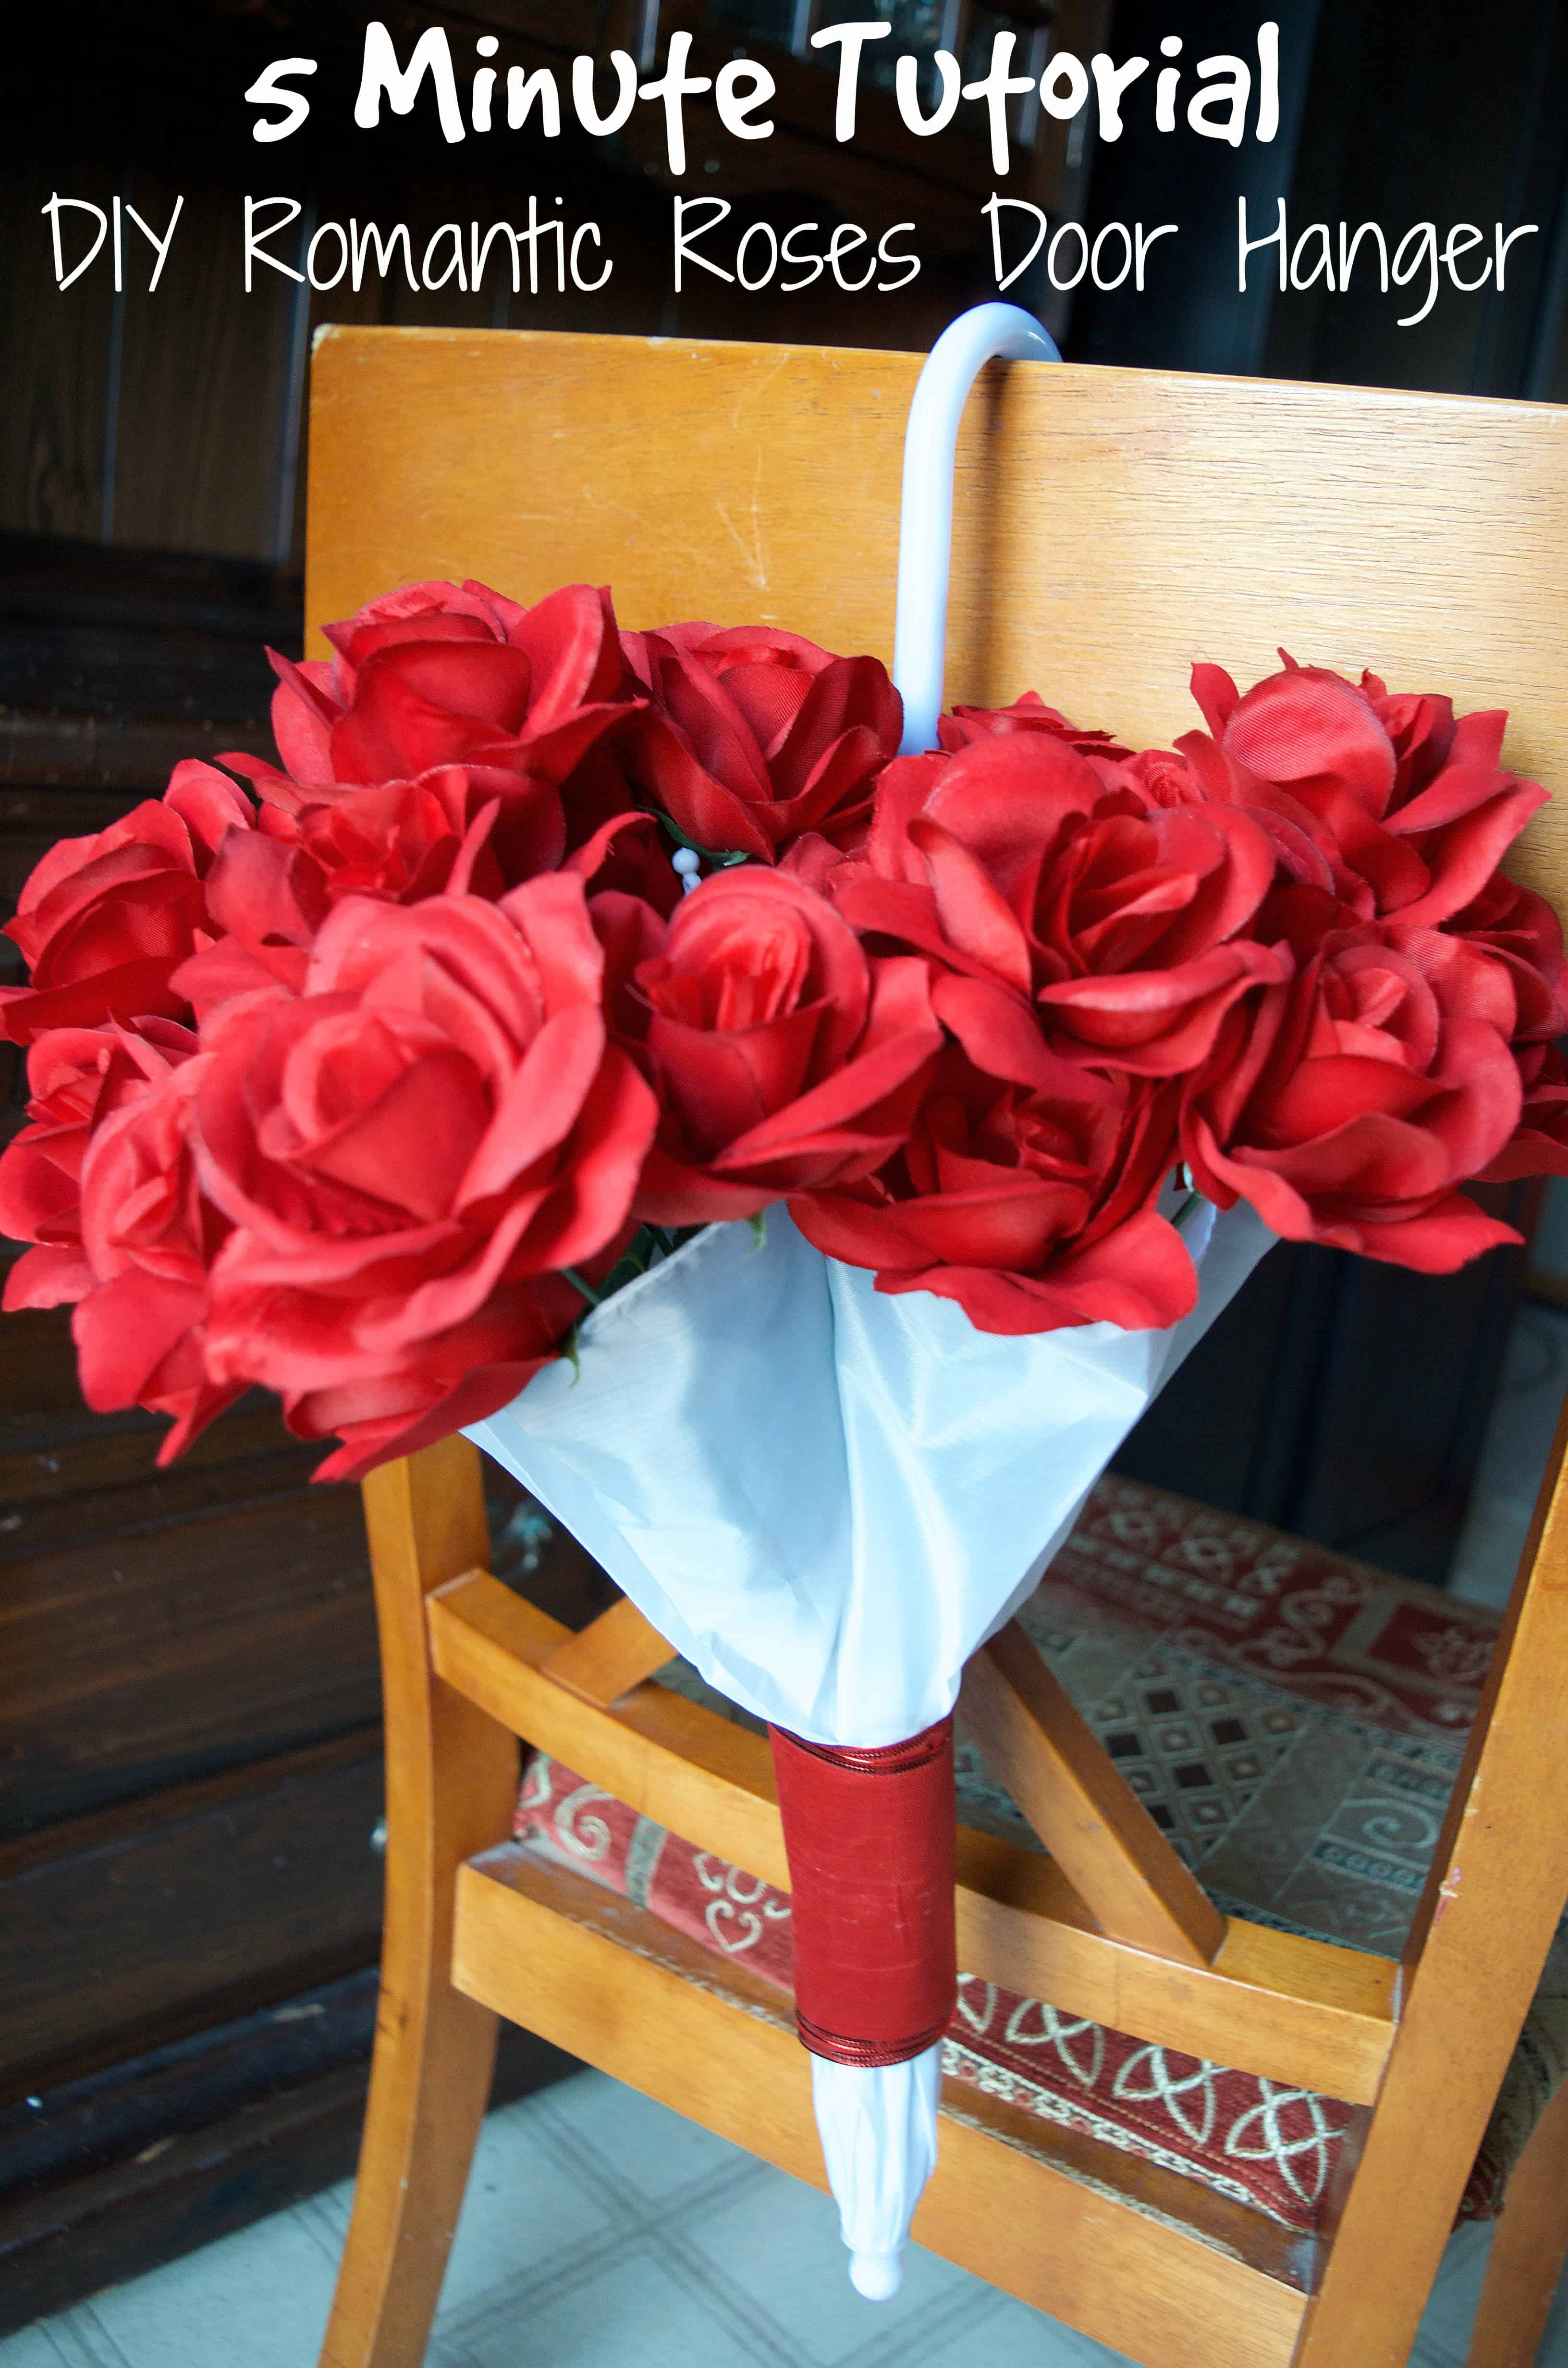 DIY Romantic Valentine's Day Roses in Umbrella Door Hanger